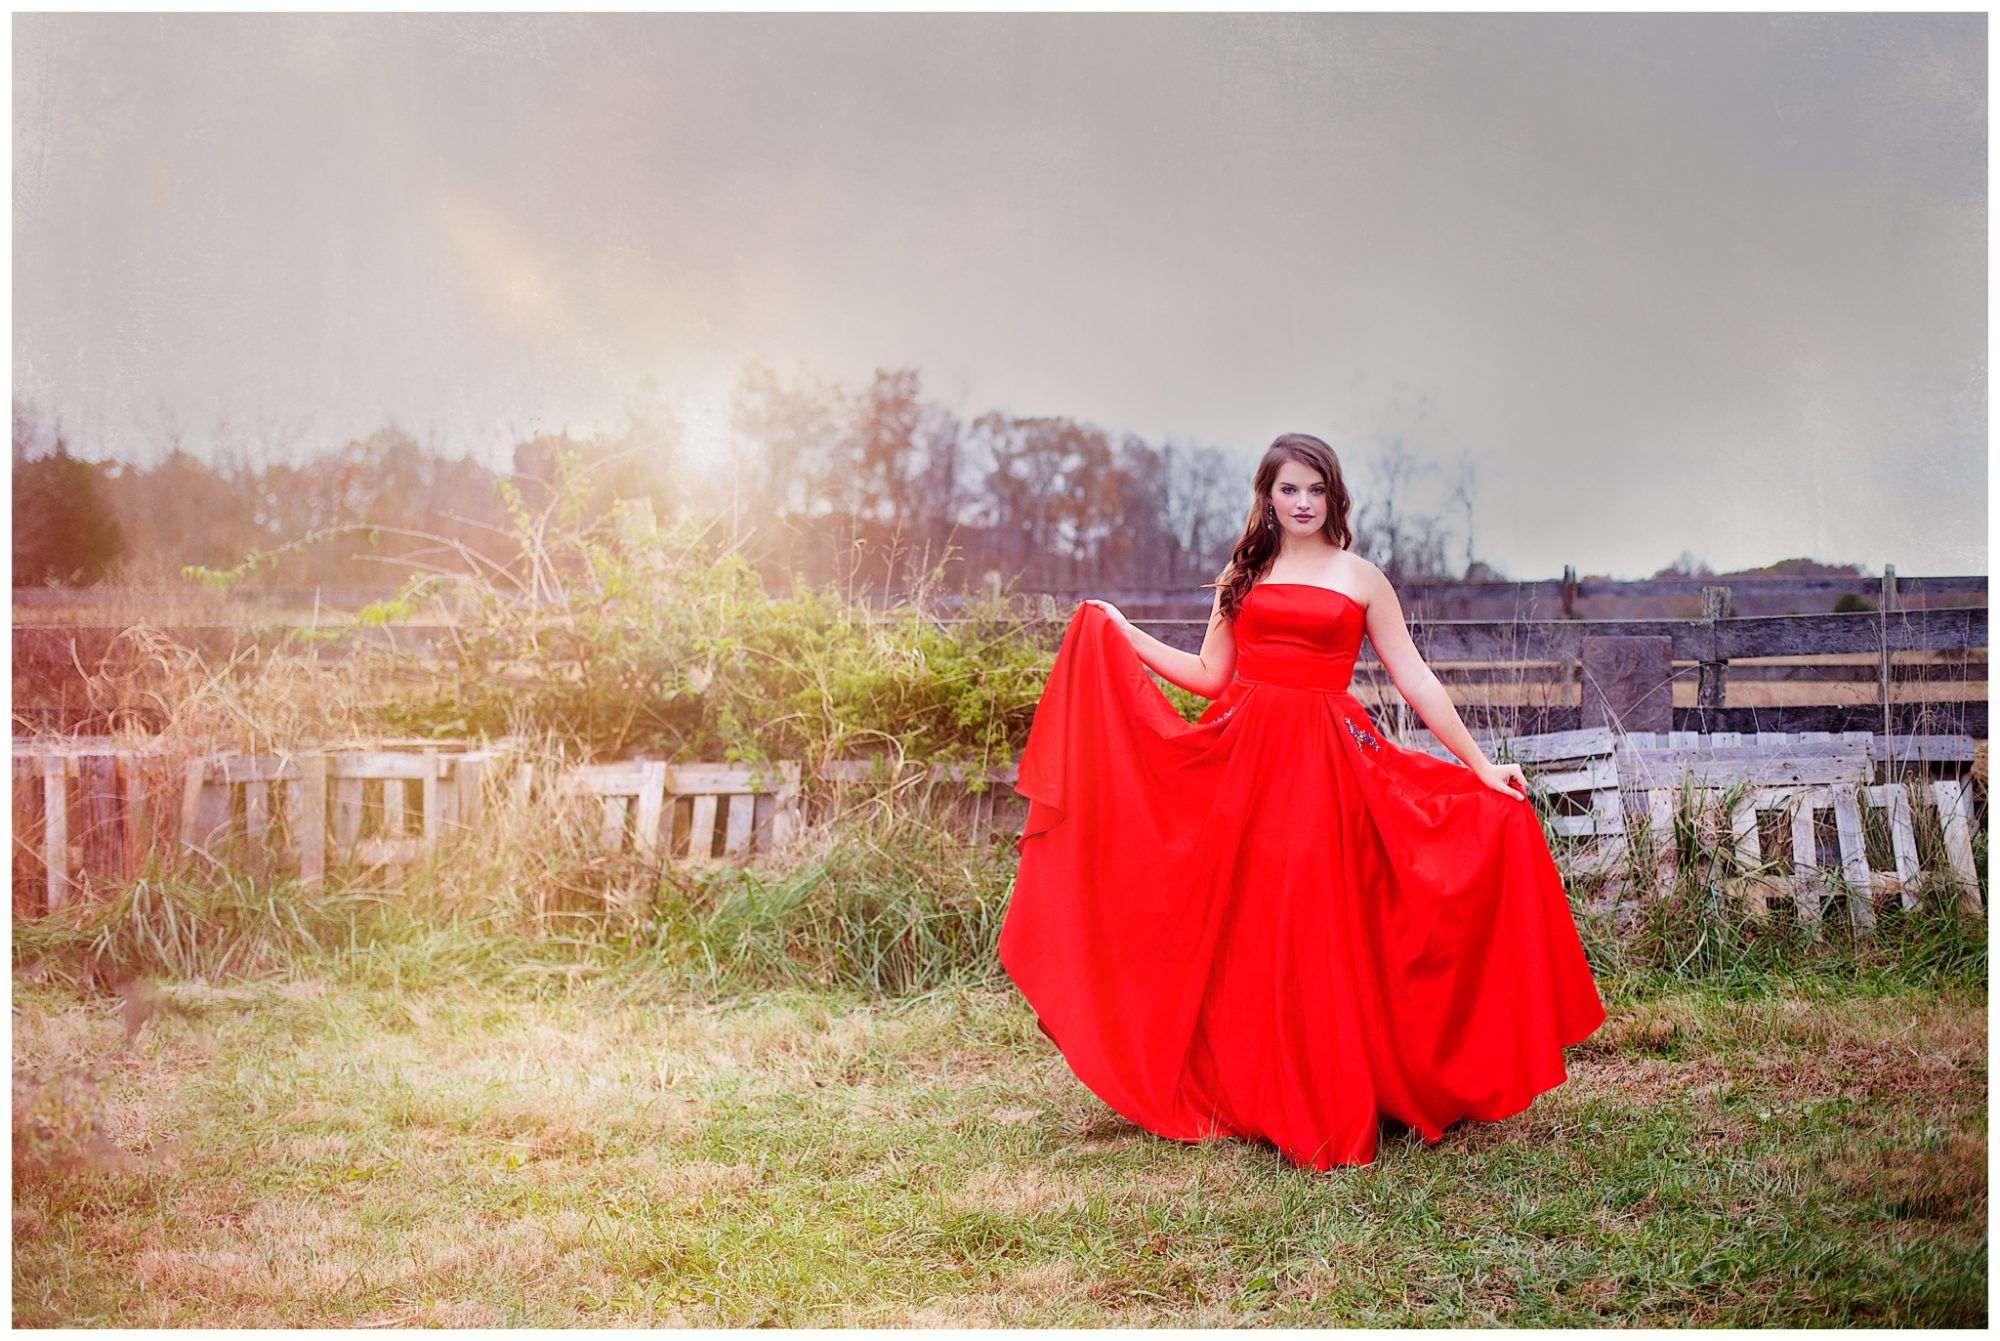 Girl in red prom dress standing in open field